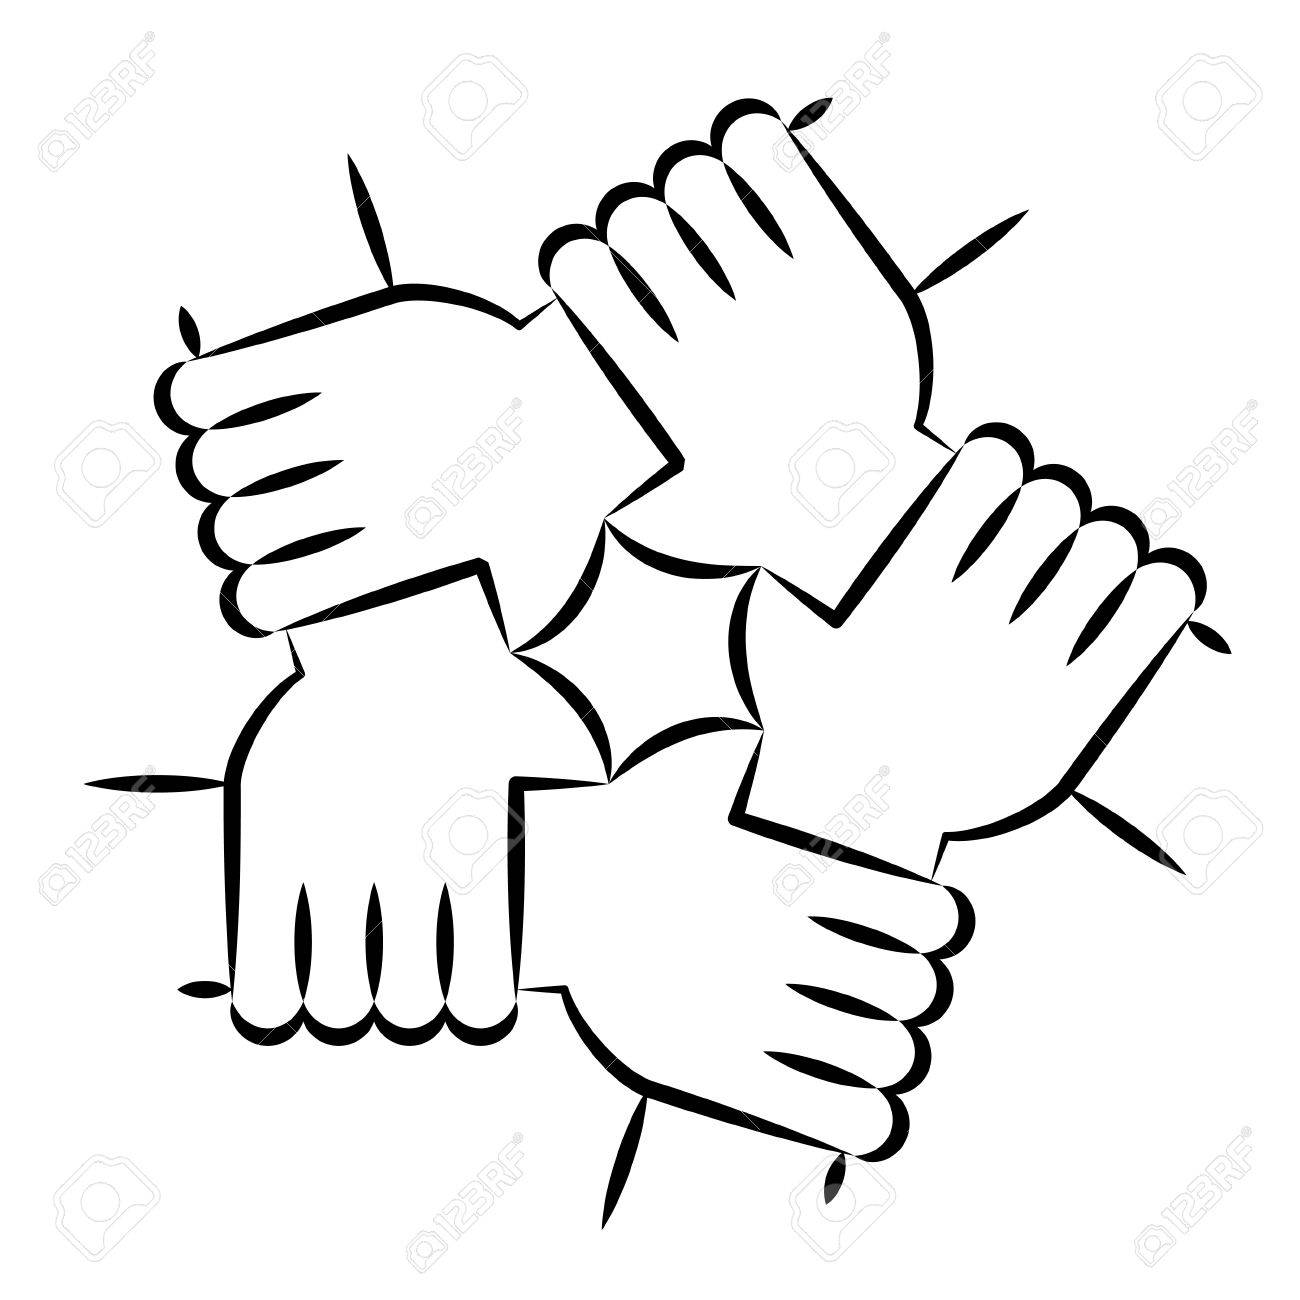 Solidariry clipart banner royalty free Vector Illustration Of Five Human Hands Holding Eachother ... banner royalty free